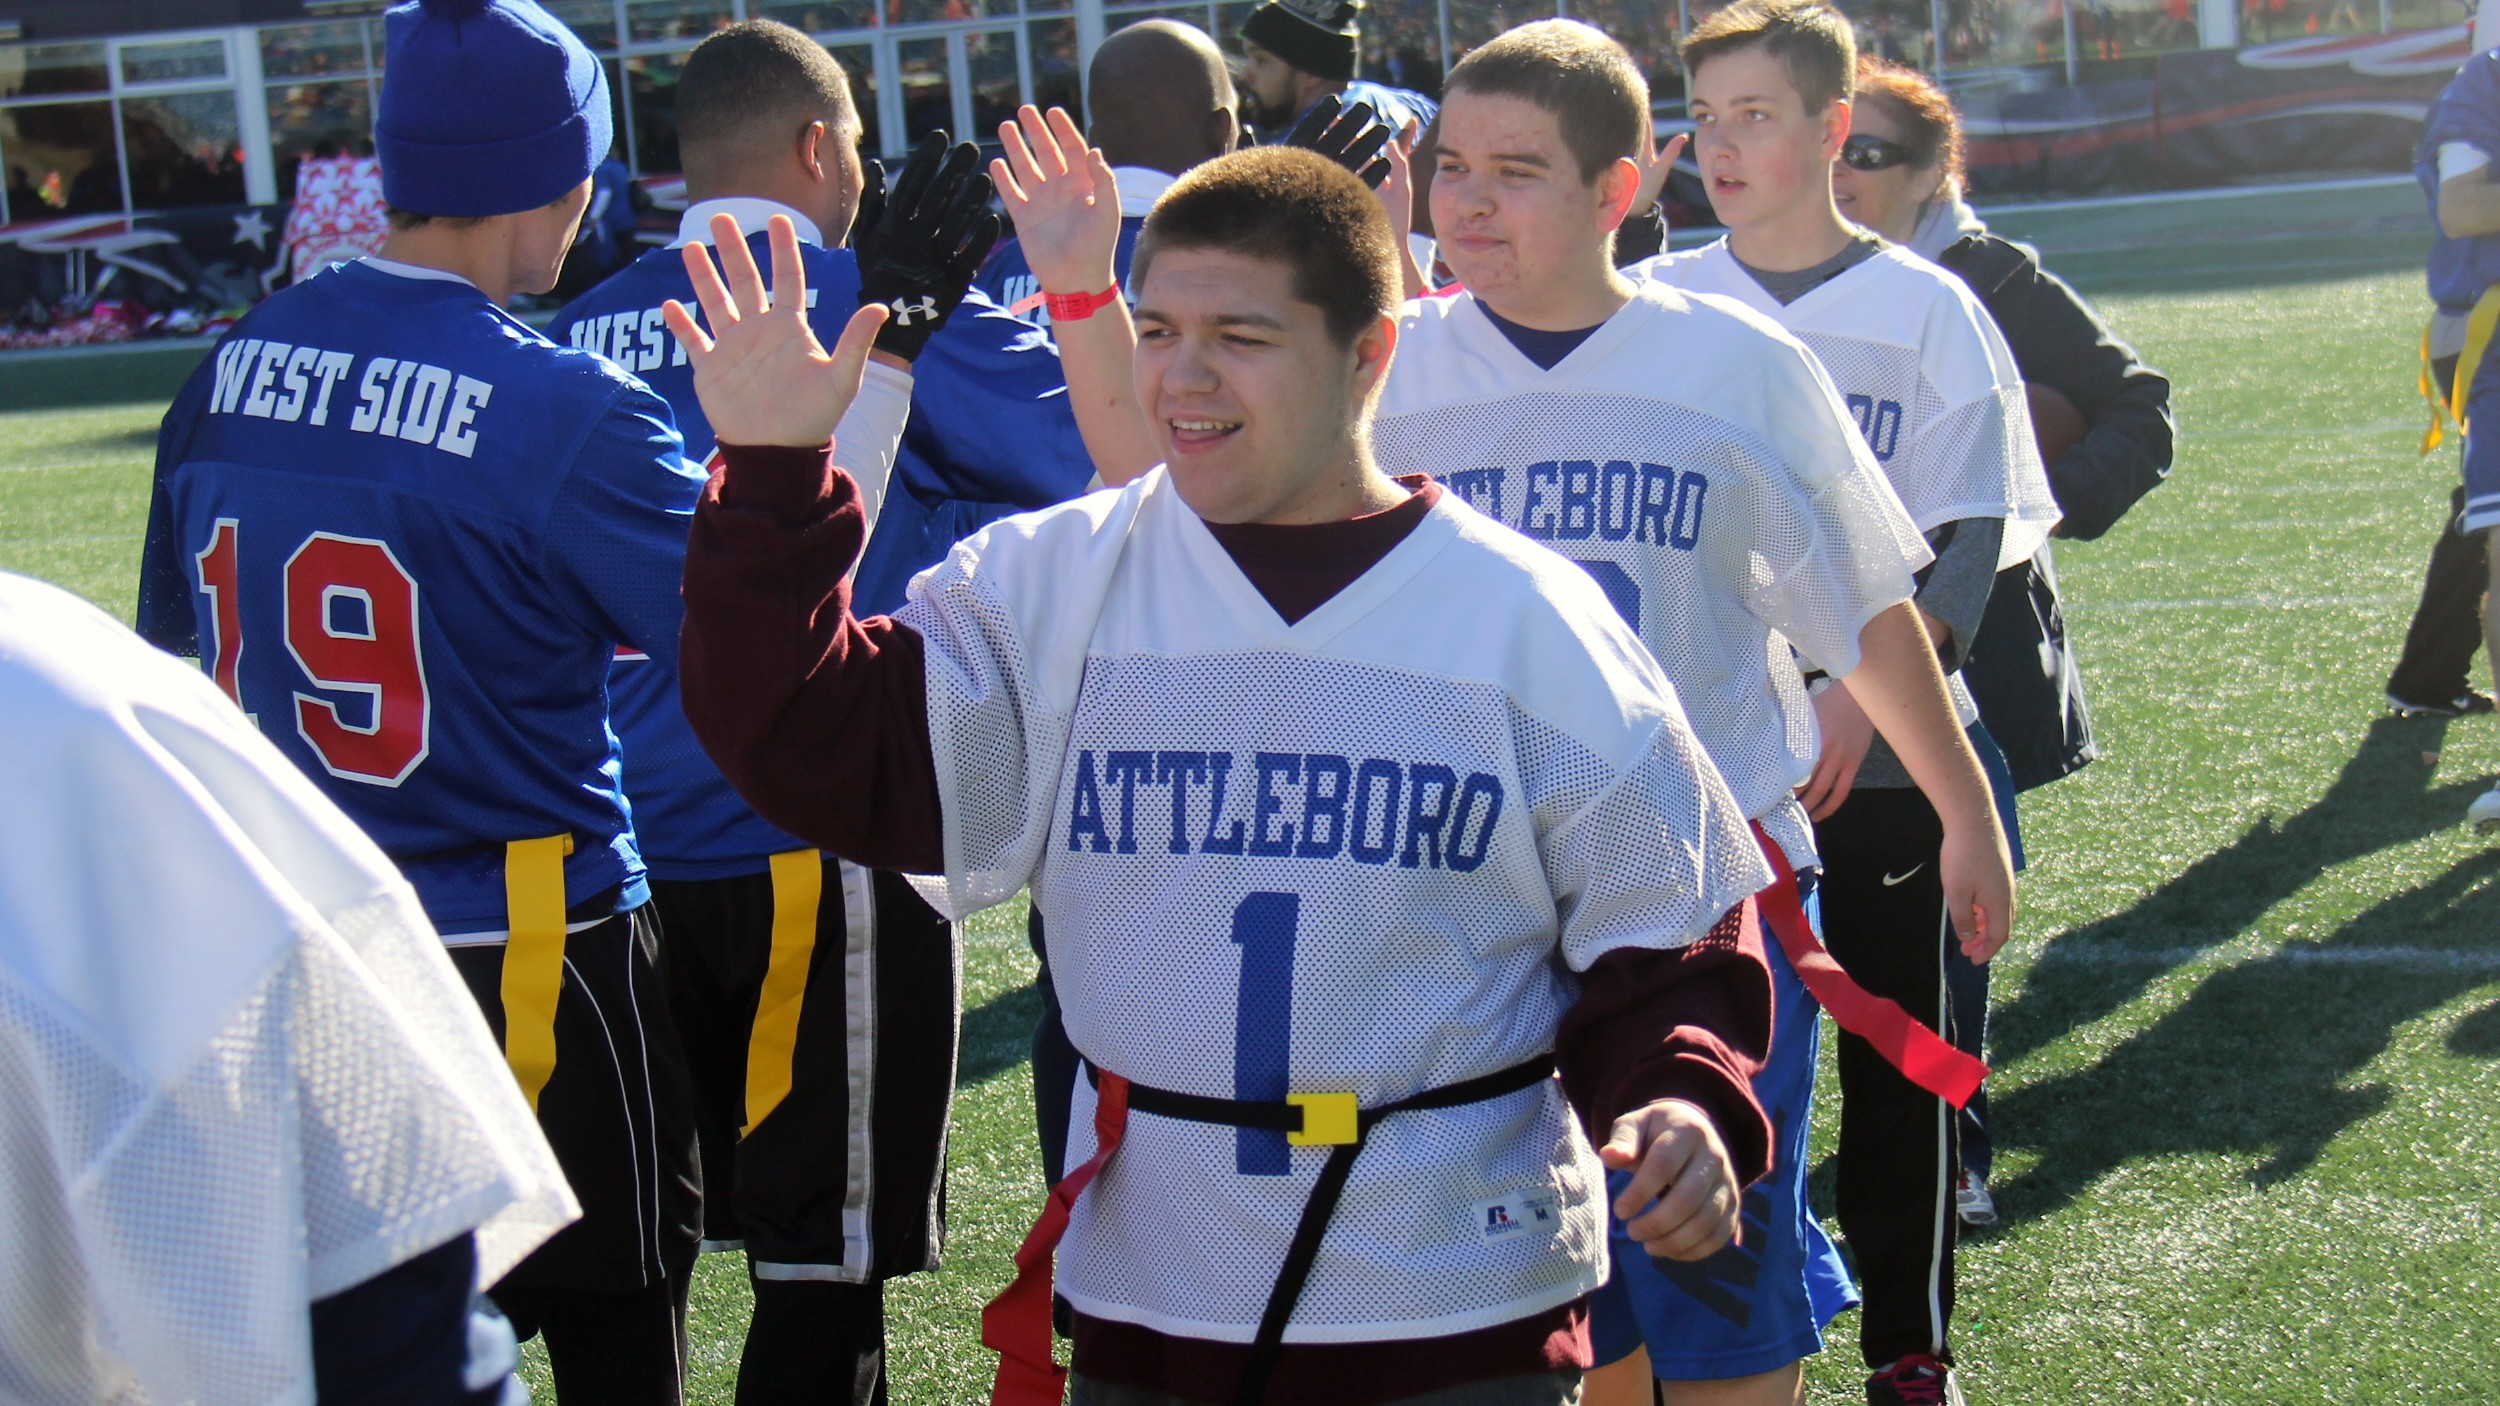 SPECIAL OLYMPICS OF MASS. FLAG FOOTBALL & CHEERING STATE GAMES